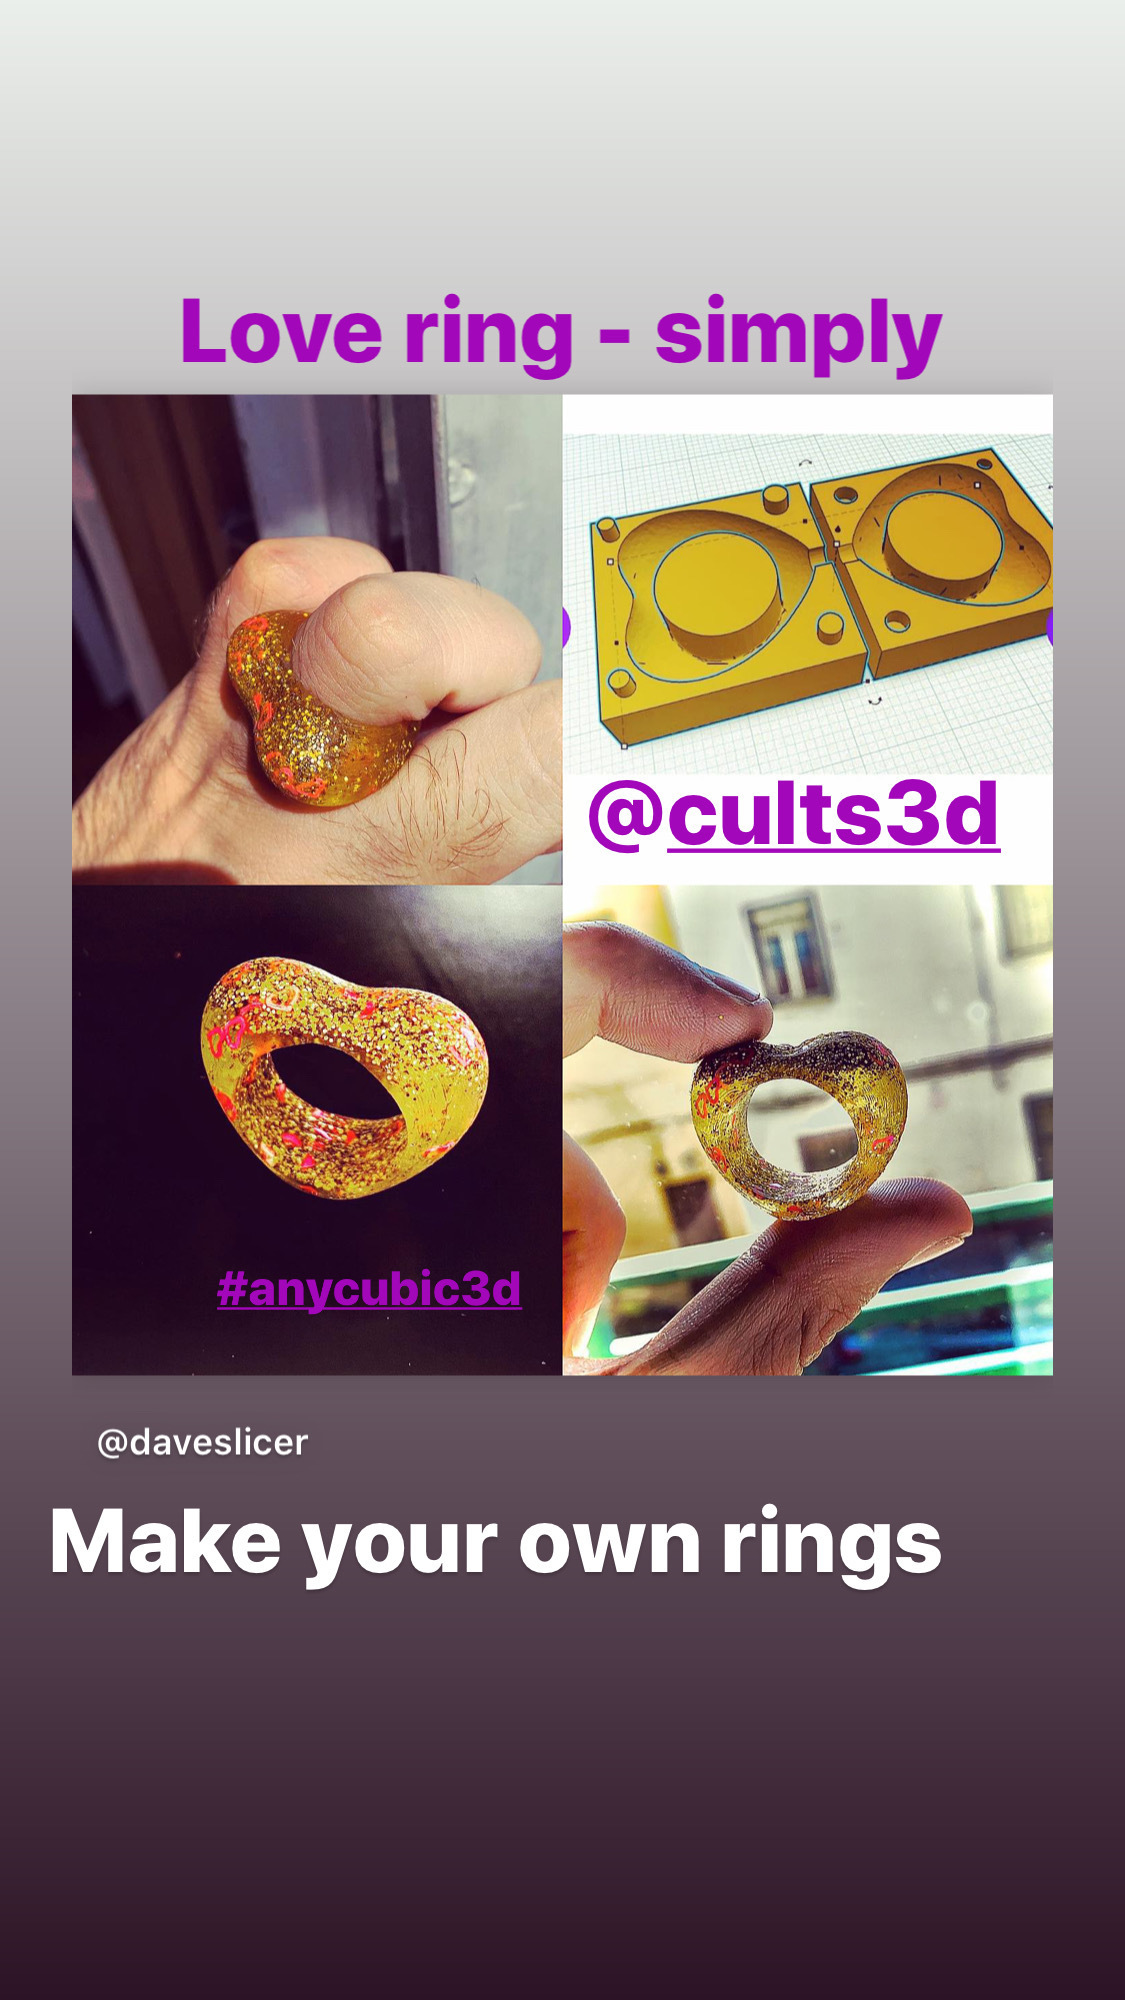 A30FBE29-E7F9-4B59-AA44-C0585D0D45BE.jpeg Download STL file LOVE RING and Mold Simply heart ring and mold . contest - #ANYCUBIC3D • 3D printer model, gaaraa